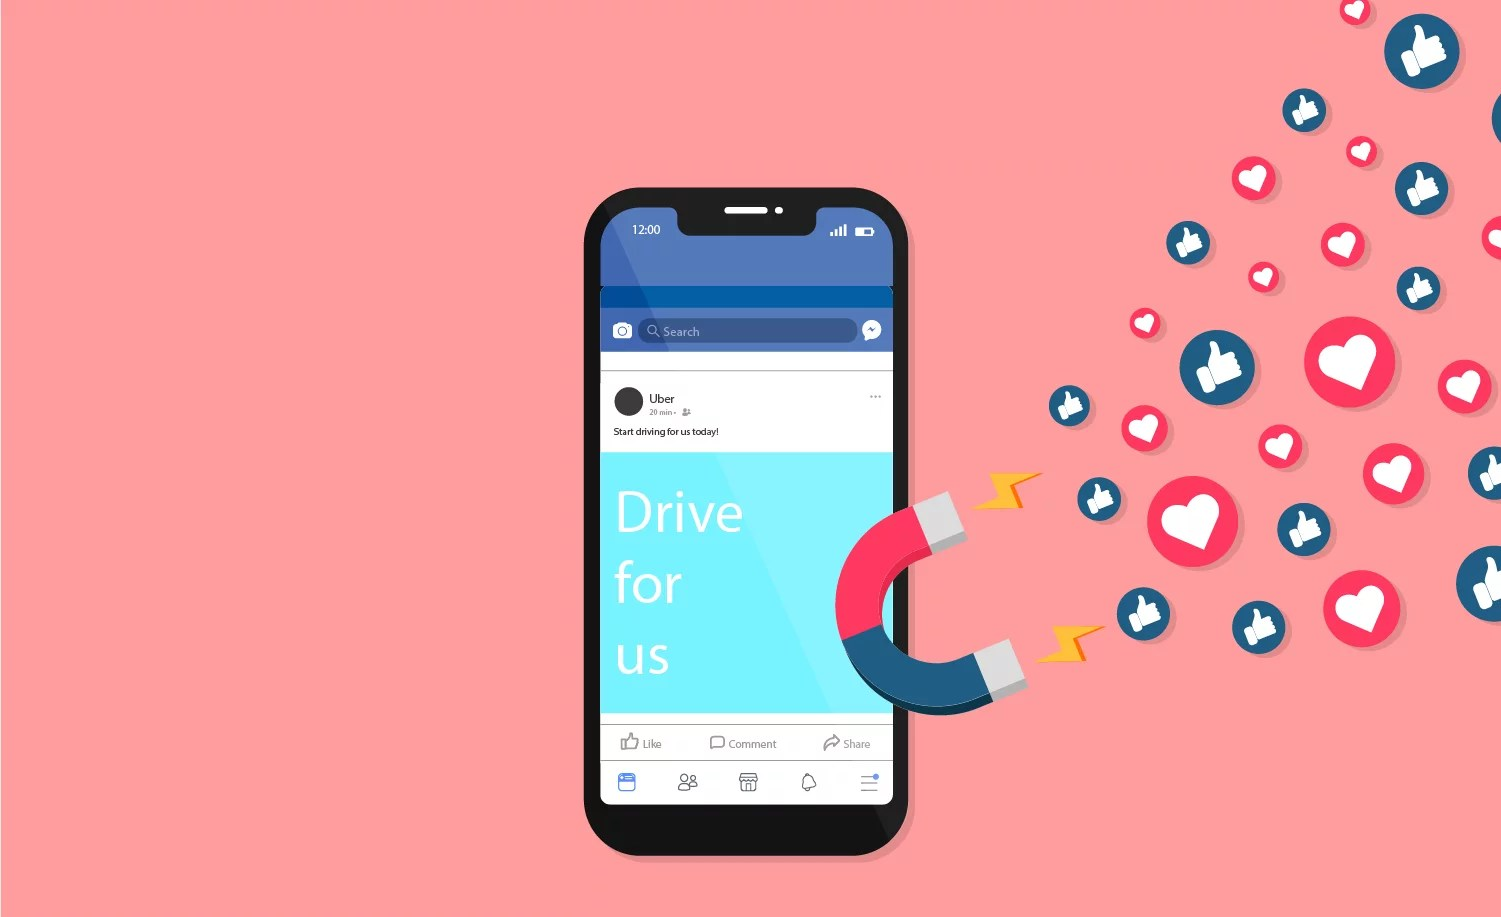 5 Ways B2B Brands Can Use Facebook for Lead Generation